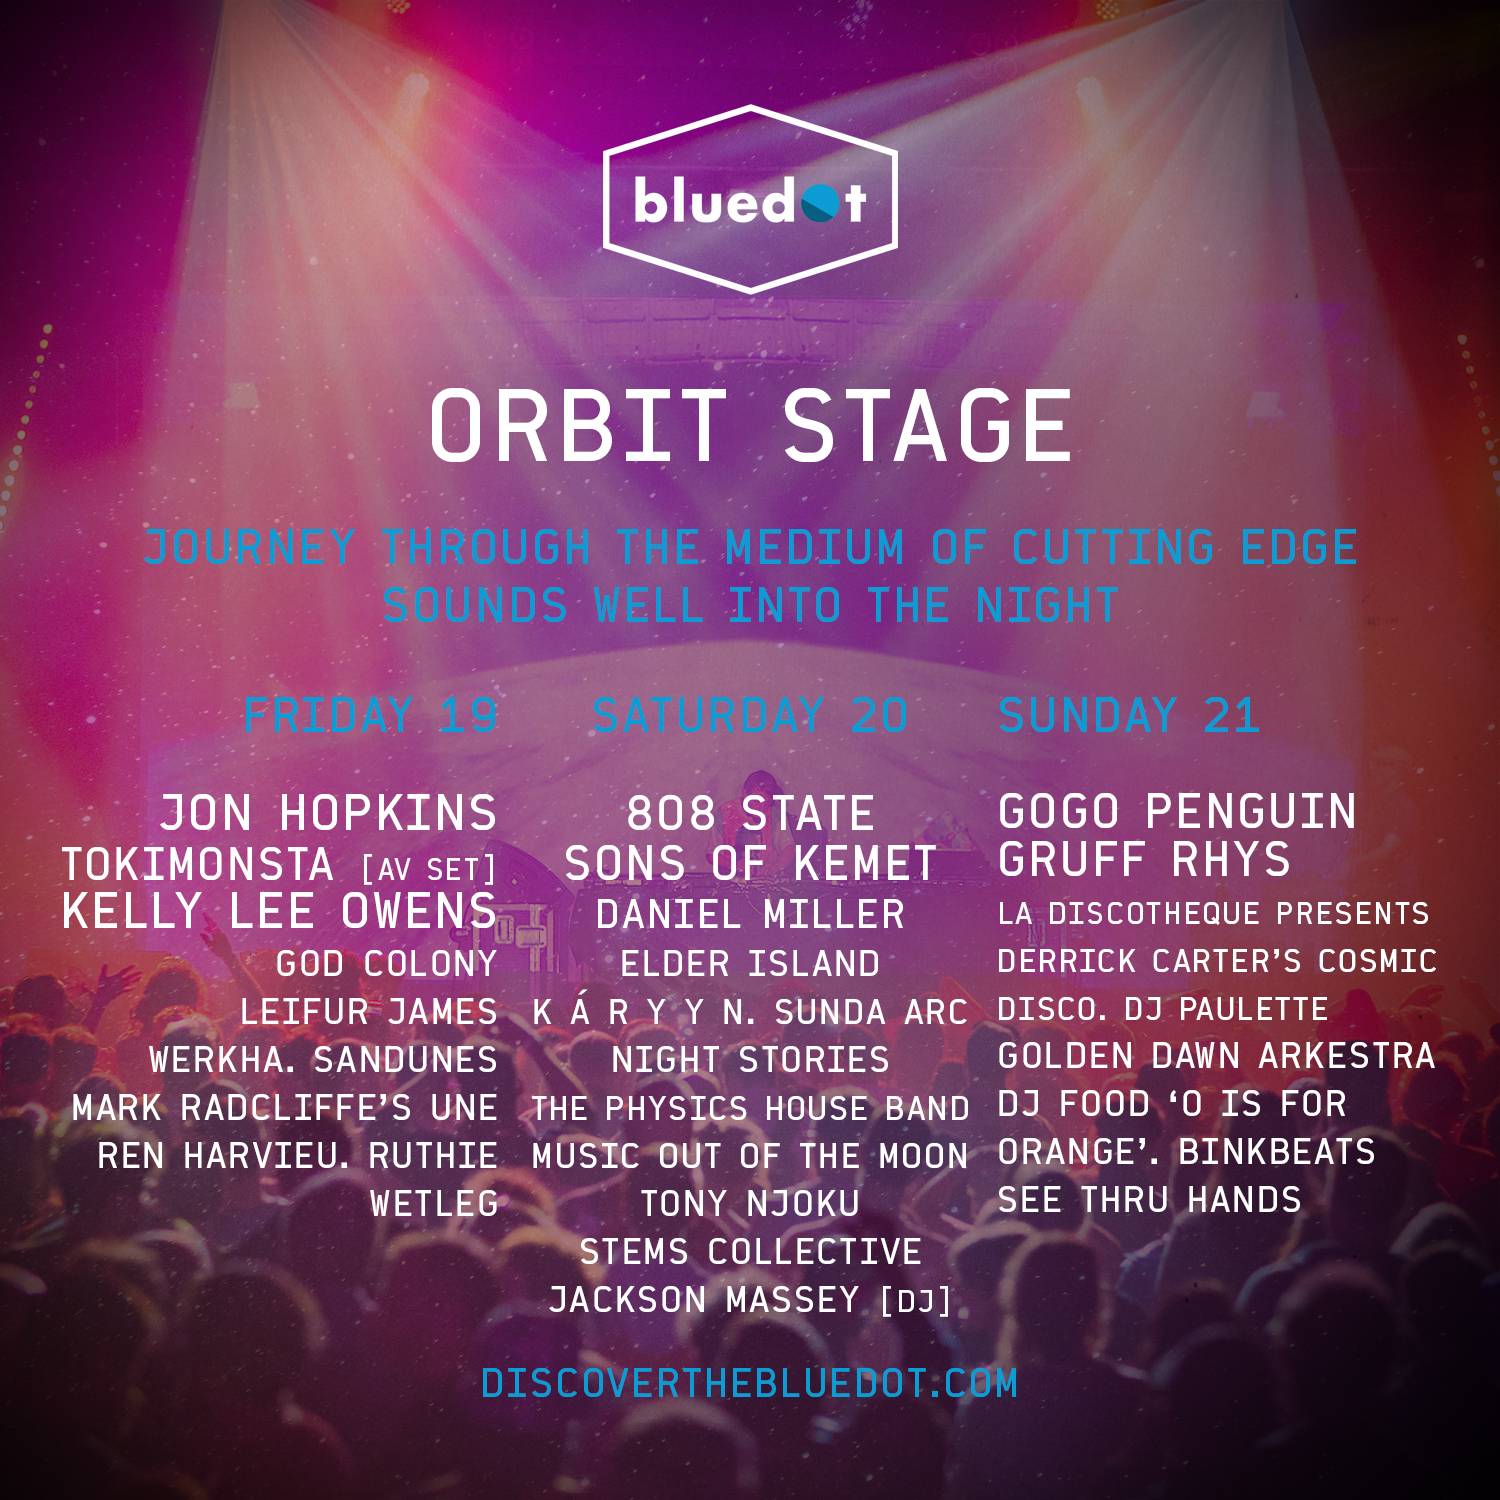 orbit stage lineup